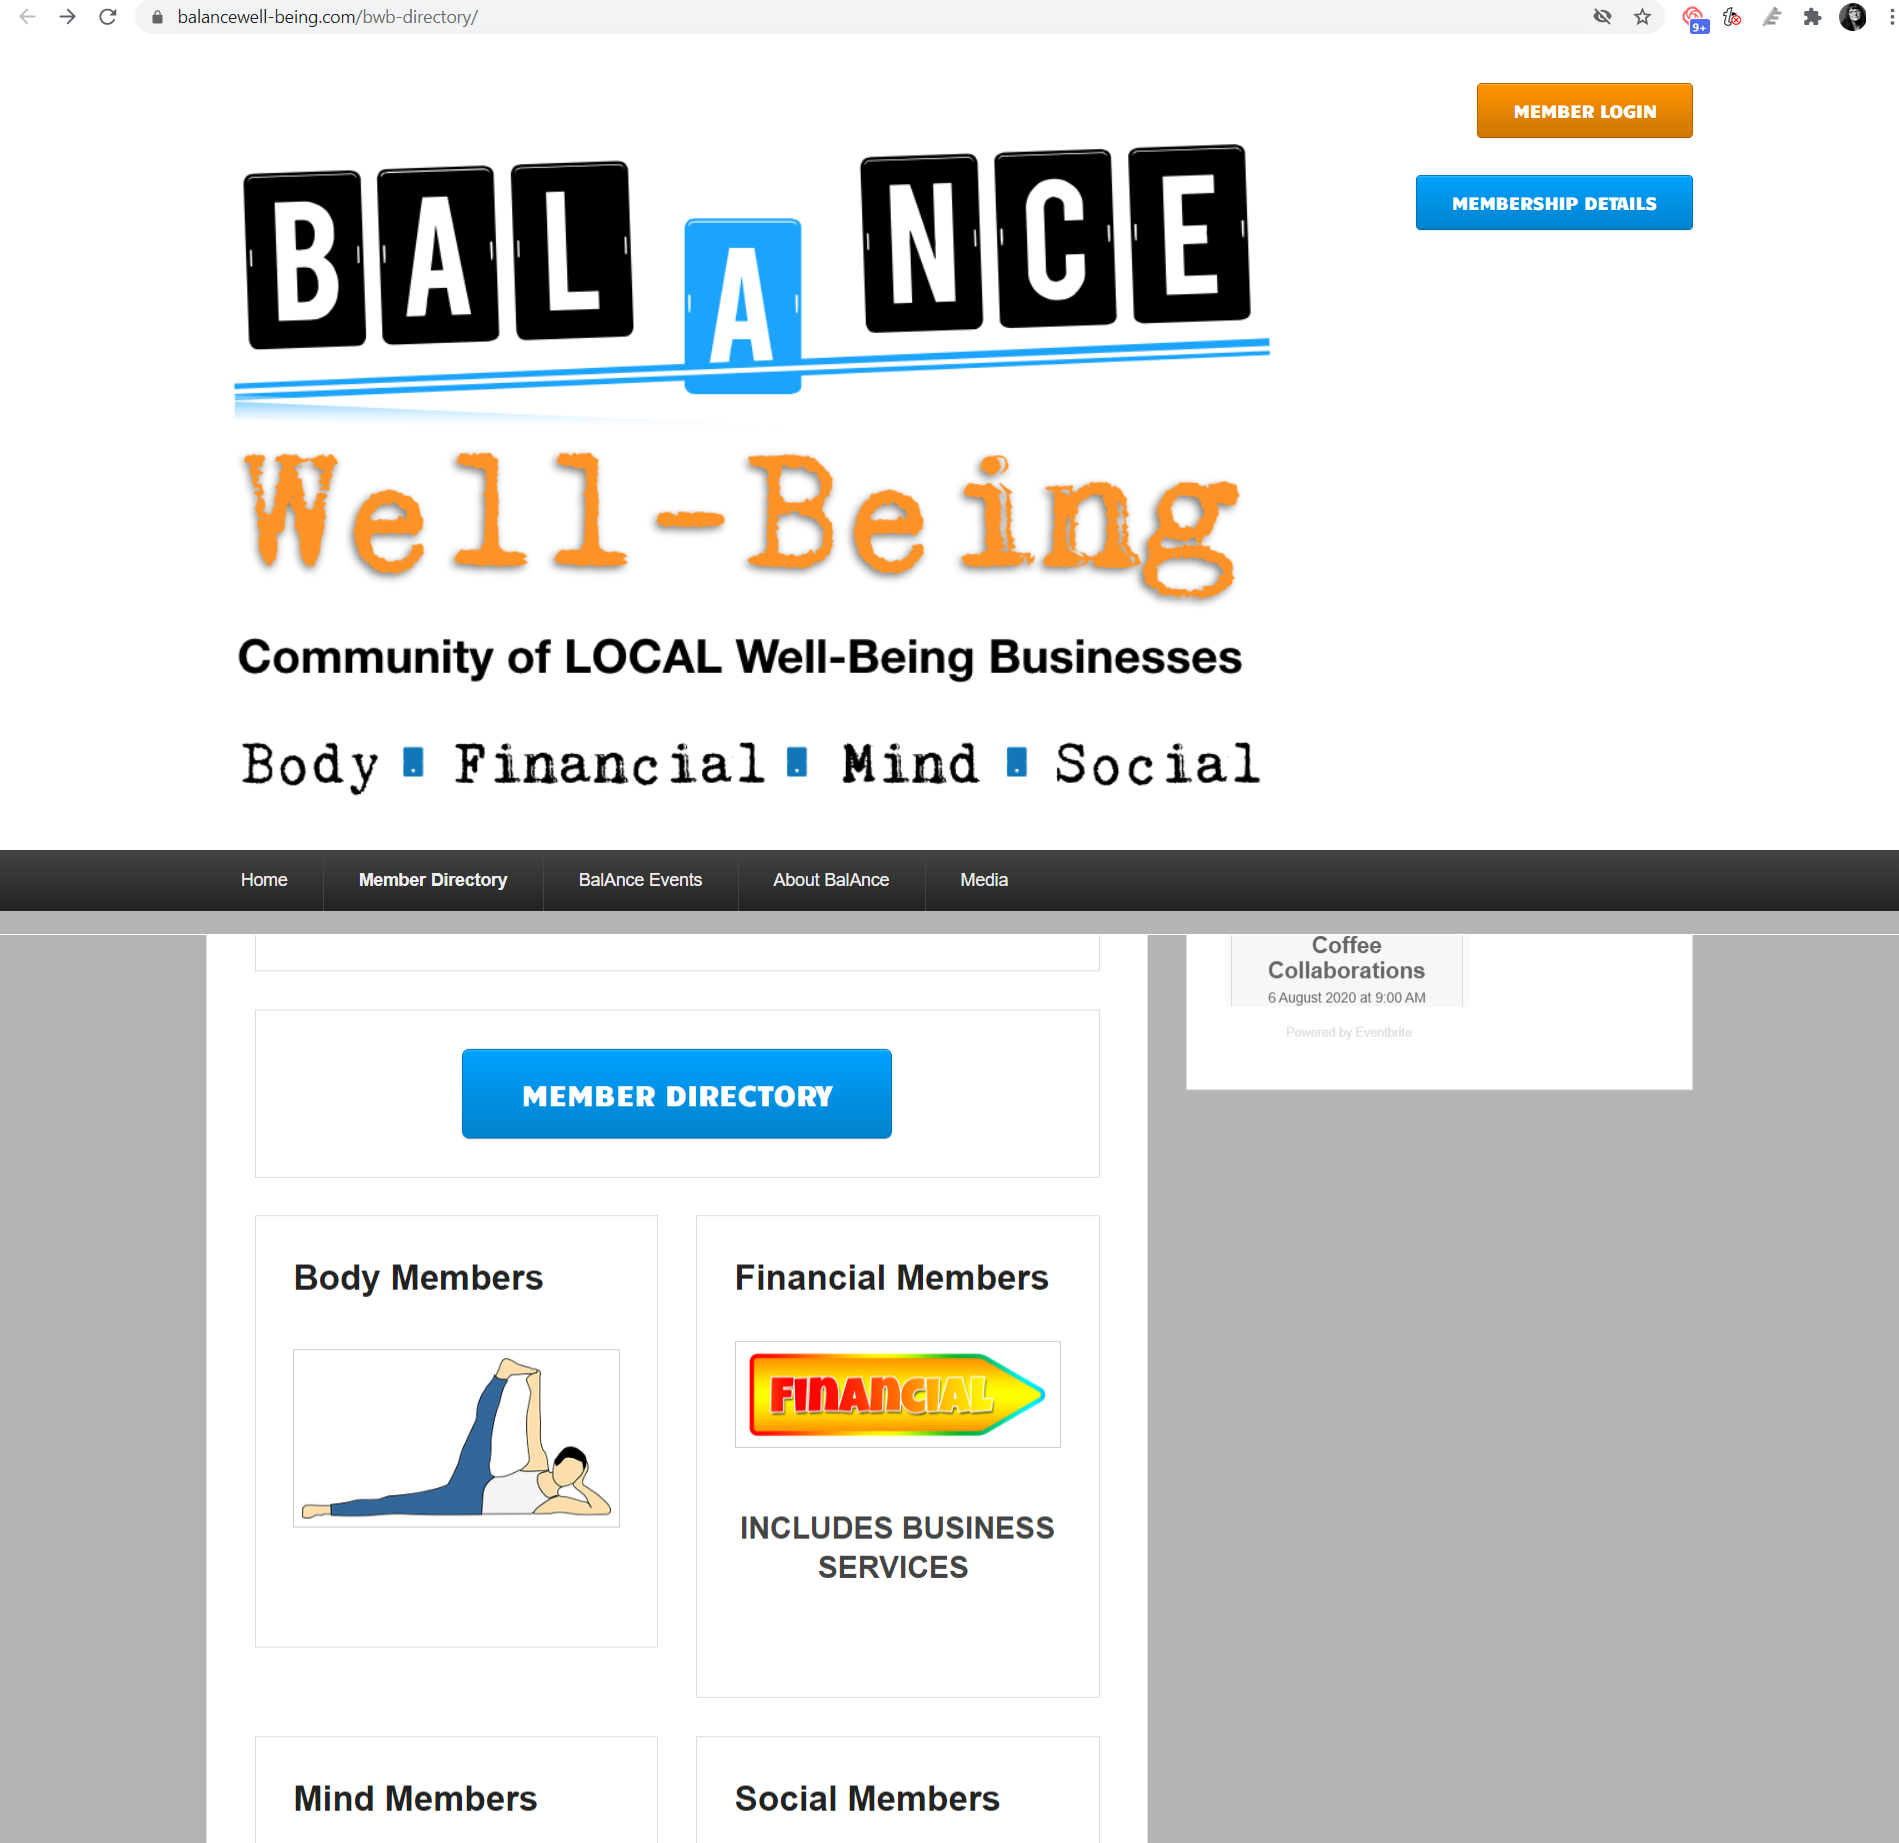 The directory homepage for Balance Well-Being.